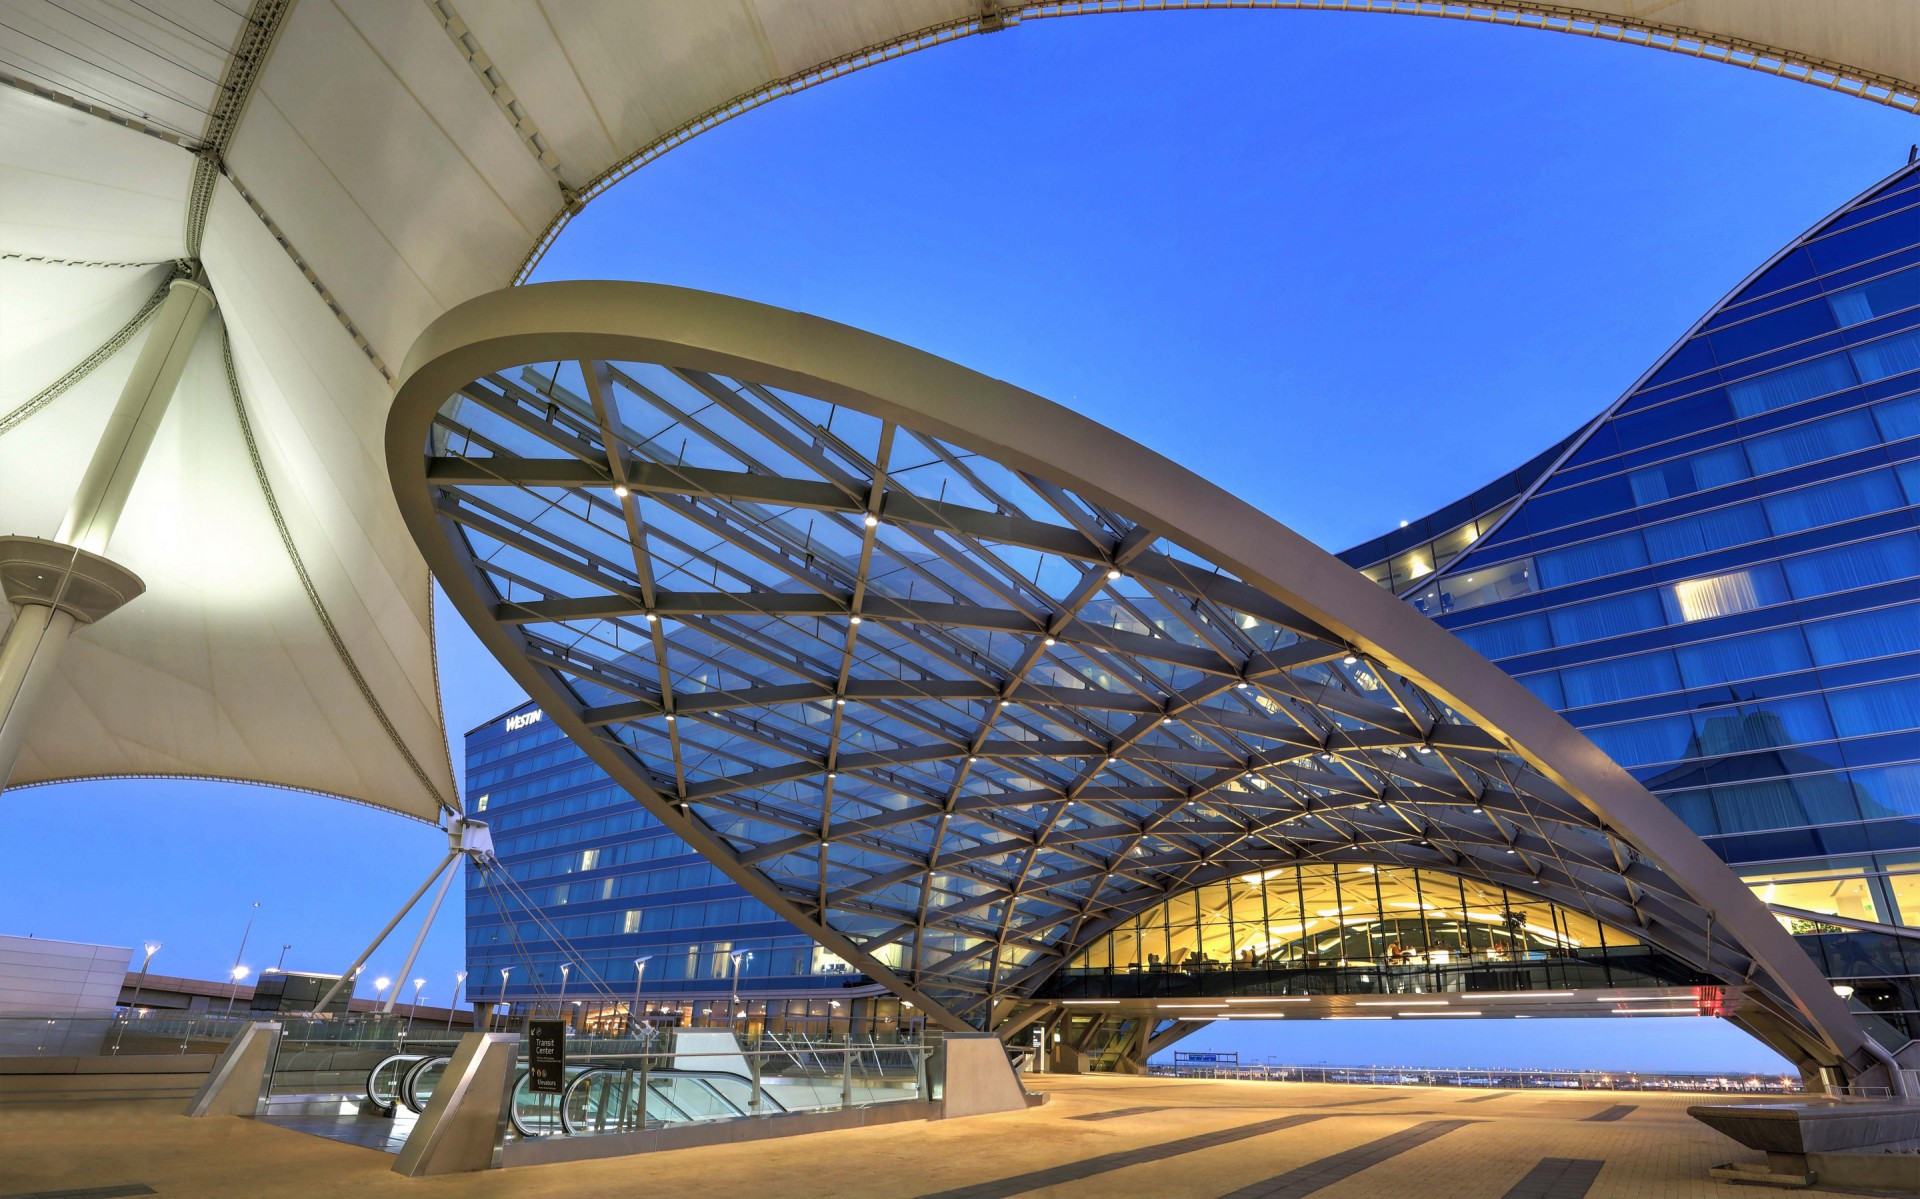 A compliment to the airport's famous tented architecture, the metal and glass canopies above the airport train station are eye-catching and can be seen from afar. – Ryan Linton